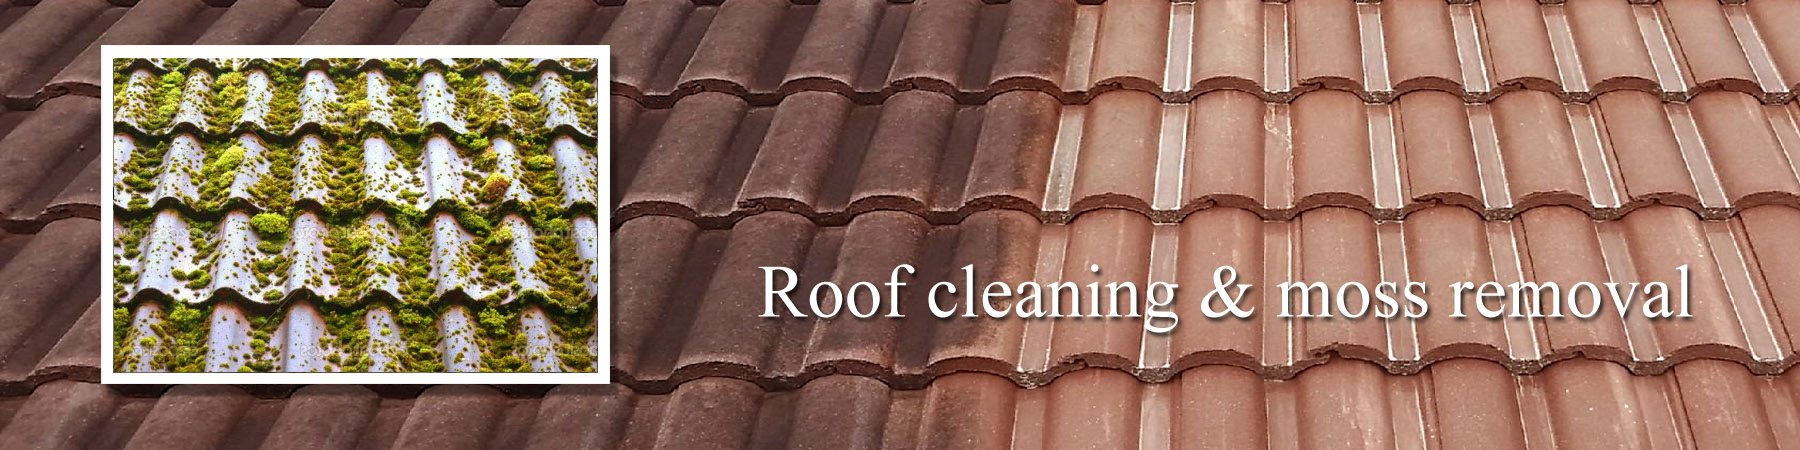 J.R. Roof Cleaning Ramsgate roof moss removal repairs & coating J R Cleaning